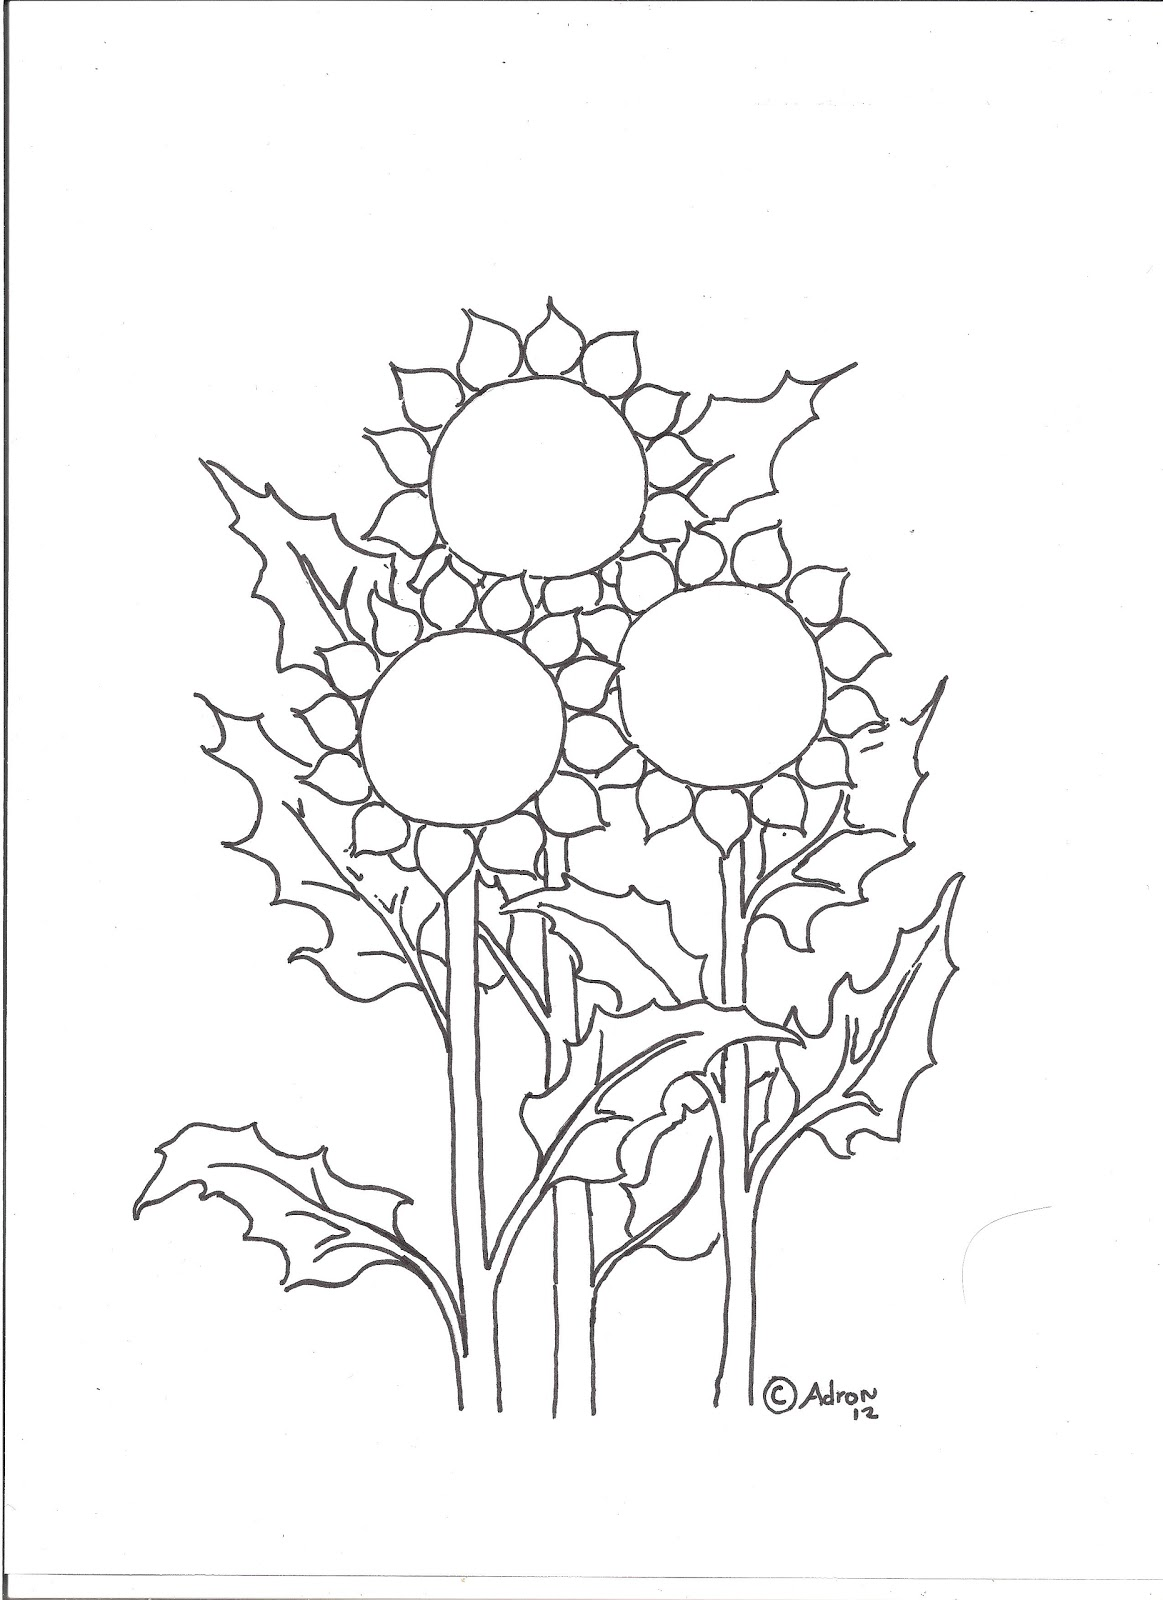 Coloring Pages for Kids by Mr. Adron: Three Sunflowers ...